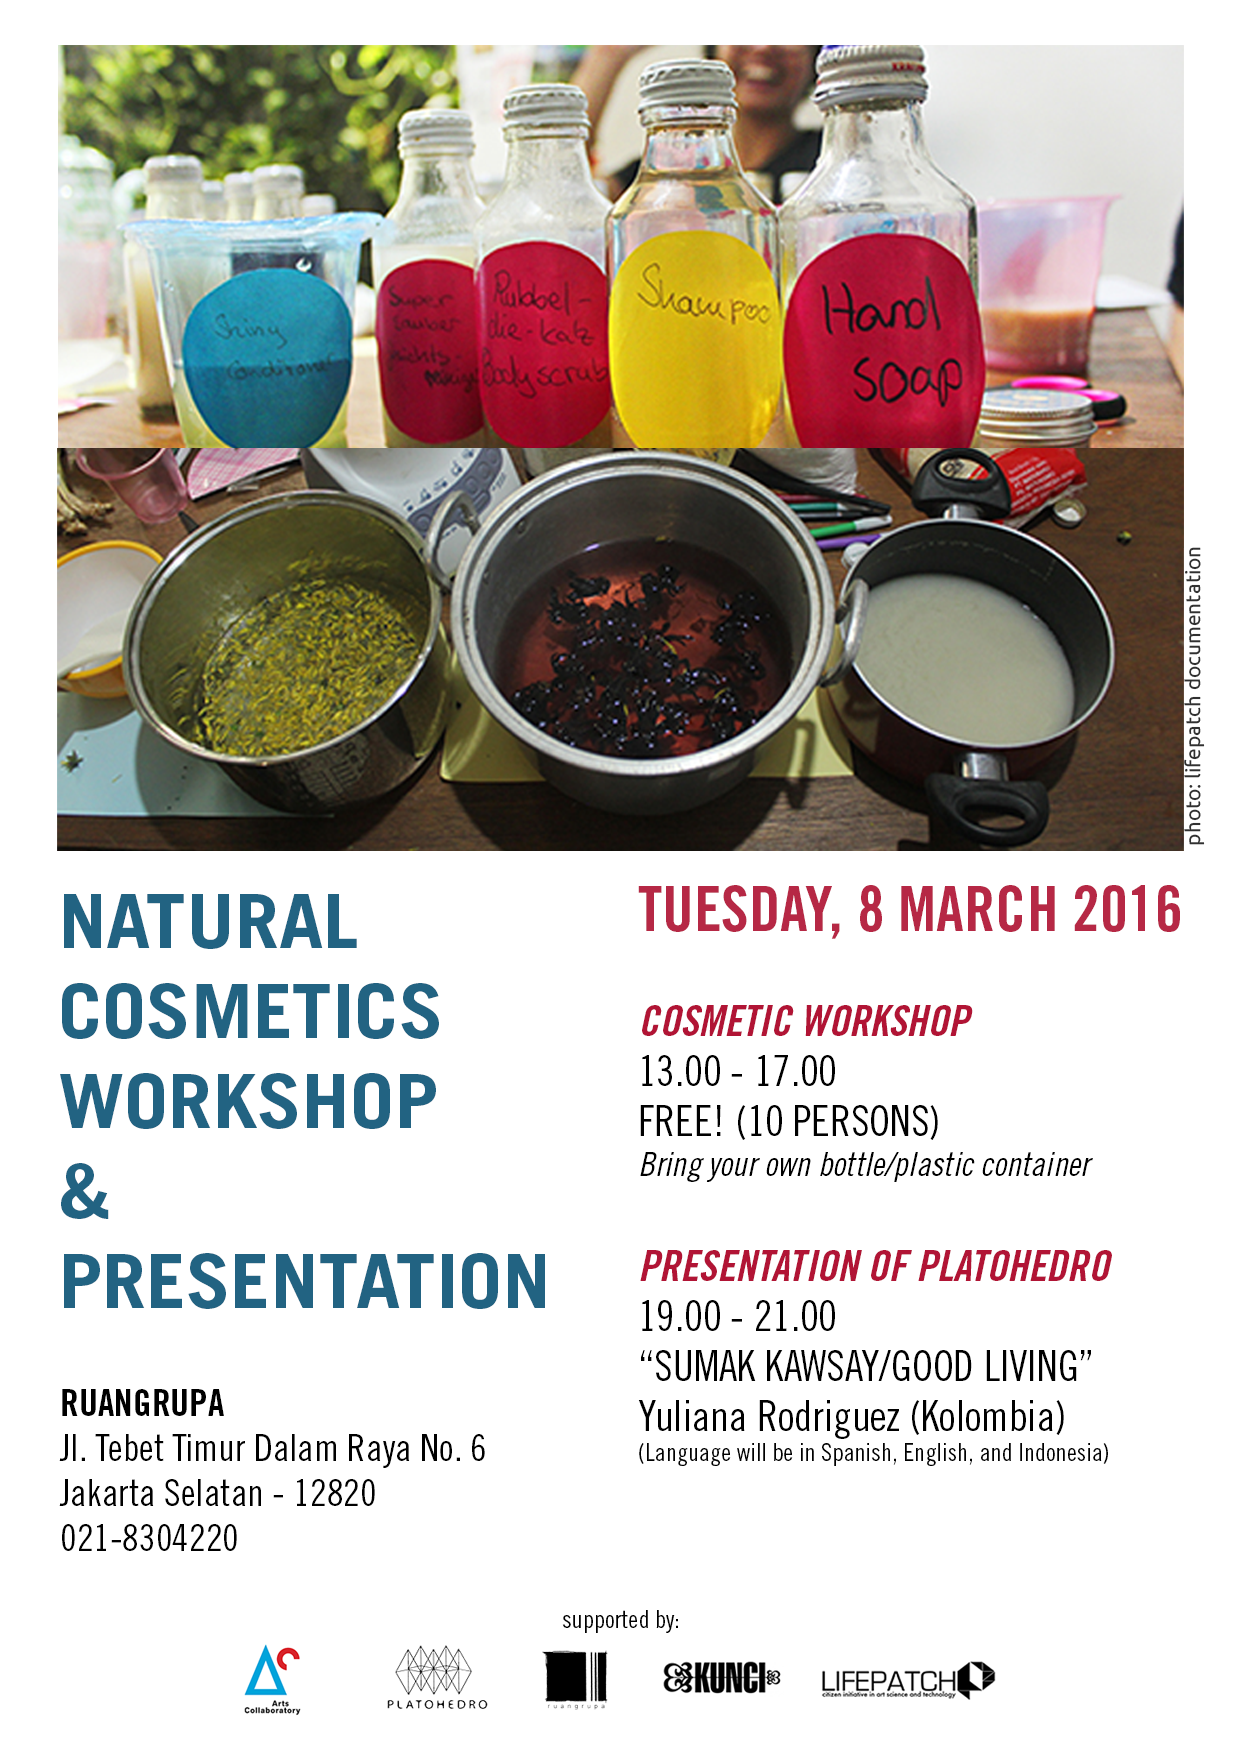 PLATOHEDRO: NATURAL COSMETIC WORKSHOP/PRESENTATION